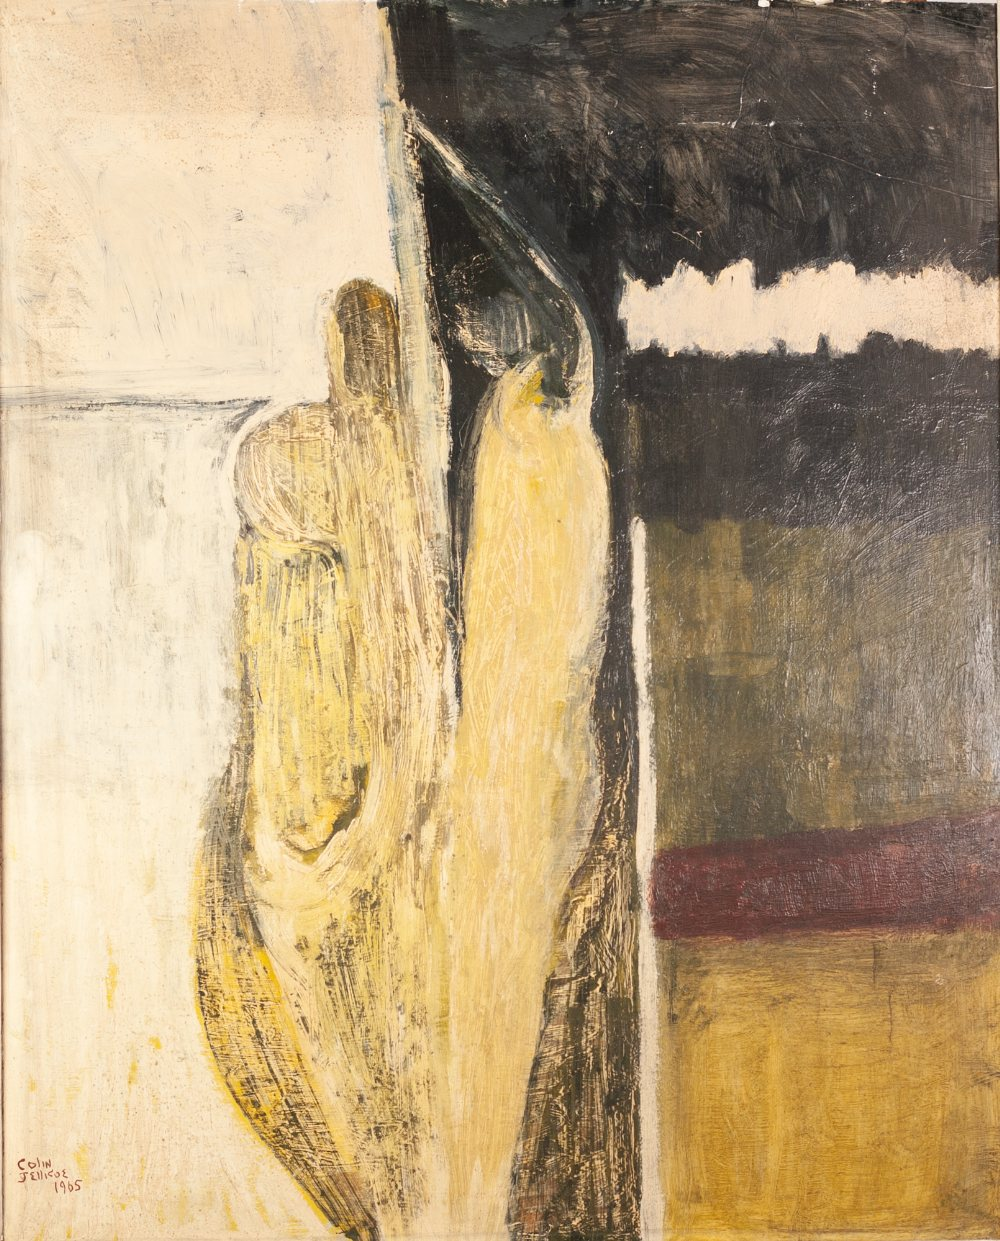 "Lot 3 - COLIN JELLICOE (1942 - 2018) OIL PAINTING ON BOARD 'Two Figures' Signed and dated 1965 32"" x 26"" ("